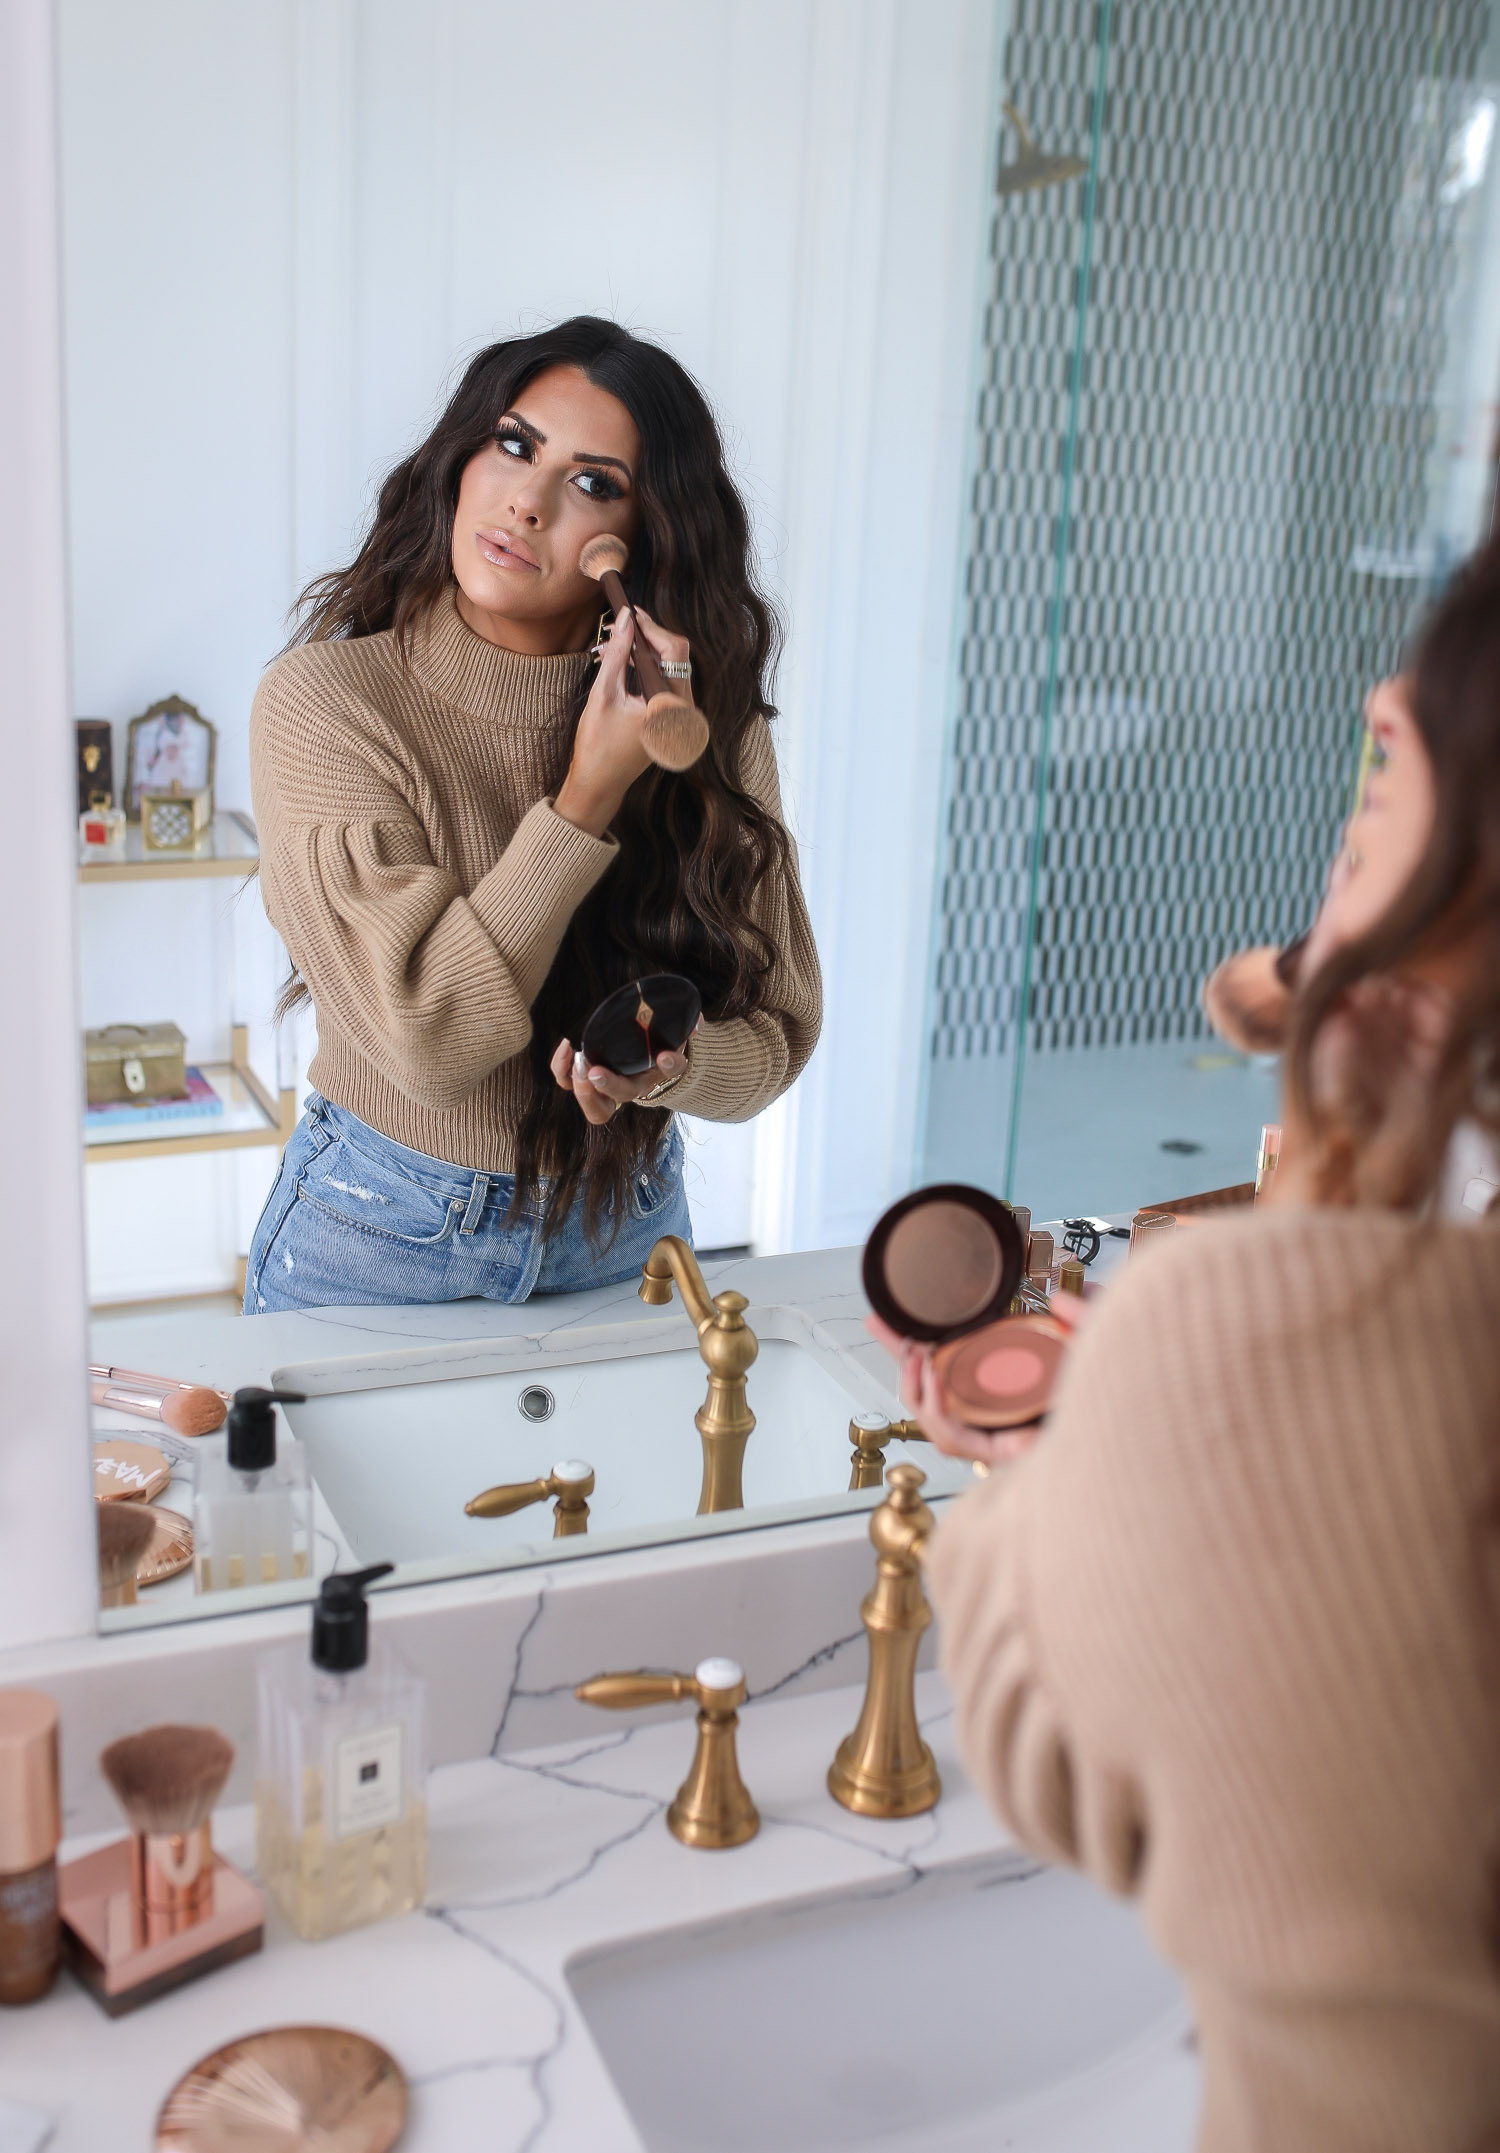 Sephora savings event fall 2020, beauty blogger sephora favorites fall 2020, emily ann gemma |Sephora Beauty Insider Sale by popular US beauty blog, The Sweetest Thing: image of Emily Gemma wearing a puff sleeve turtleneck sweater, Rolex watch, high waist distressed jeans and applying Sephora bronzer in her bathroom mirror.